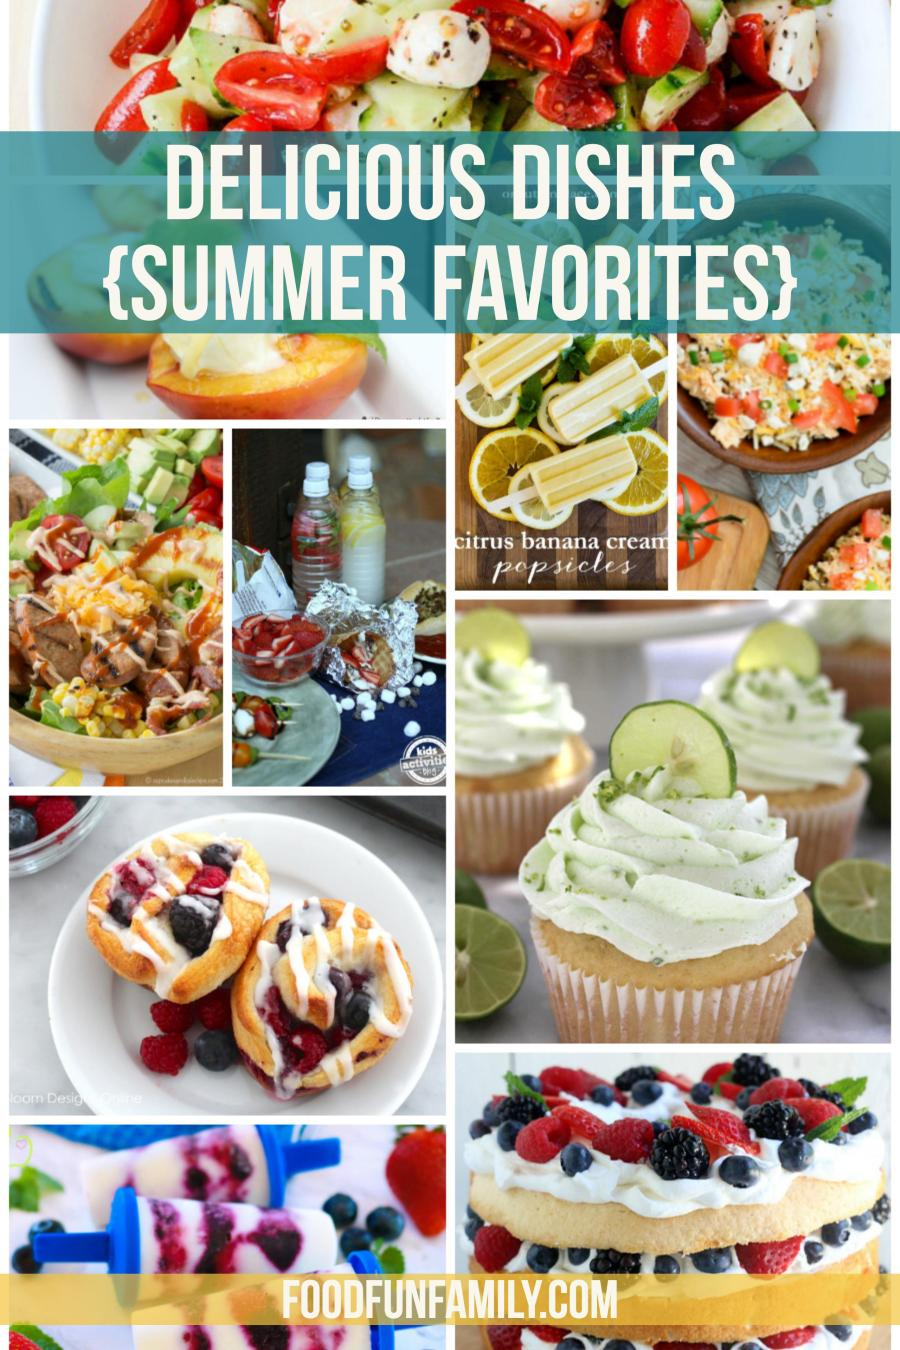 Delicious Dishes Recipe Party - Summer Favorites Special Edition - some of my favorite summer recipes from fellow bloggers, from easy summer meals to delectable summer desserts